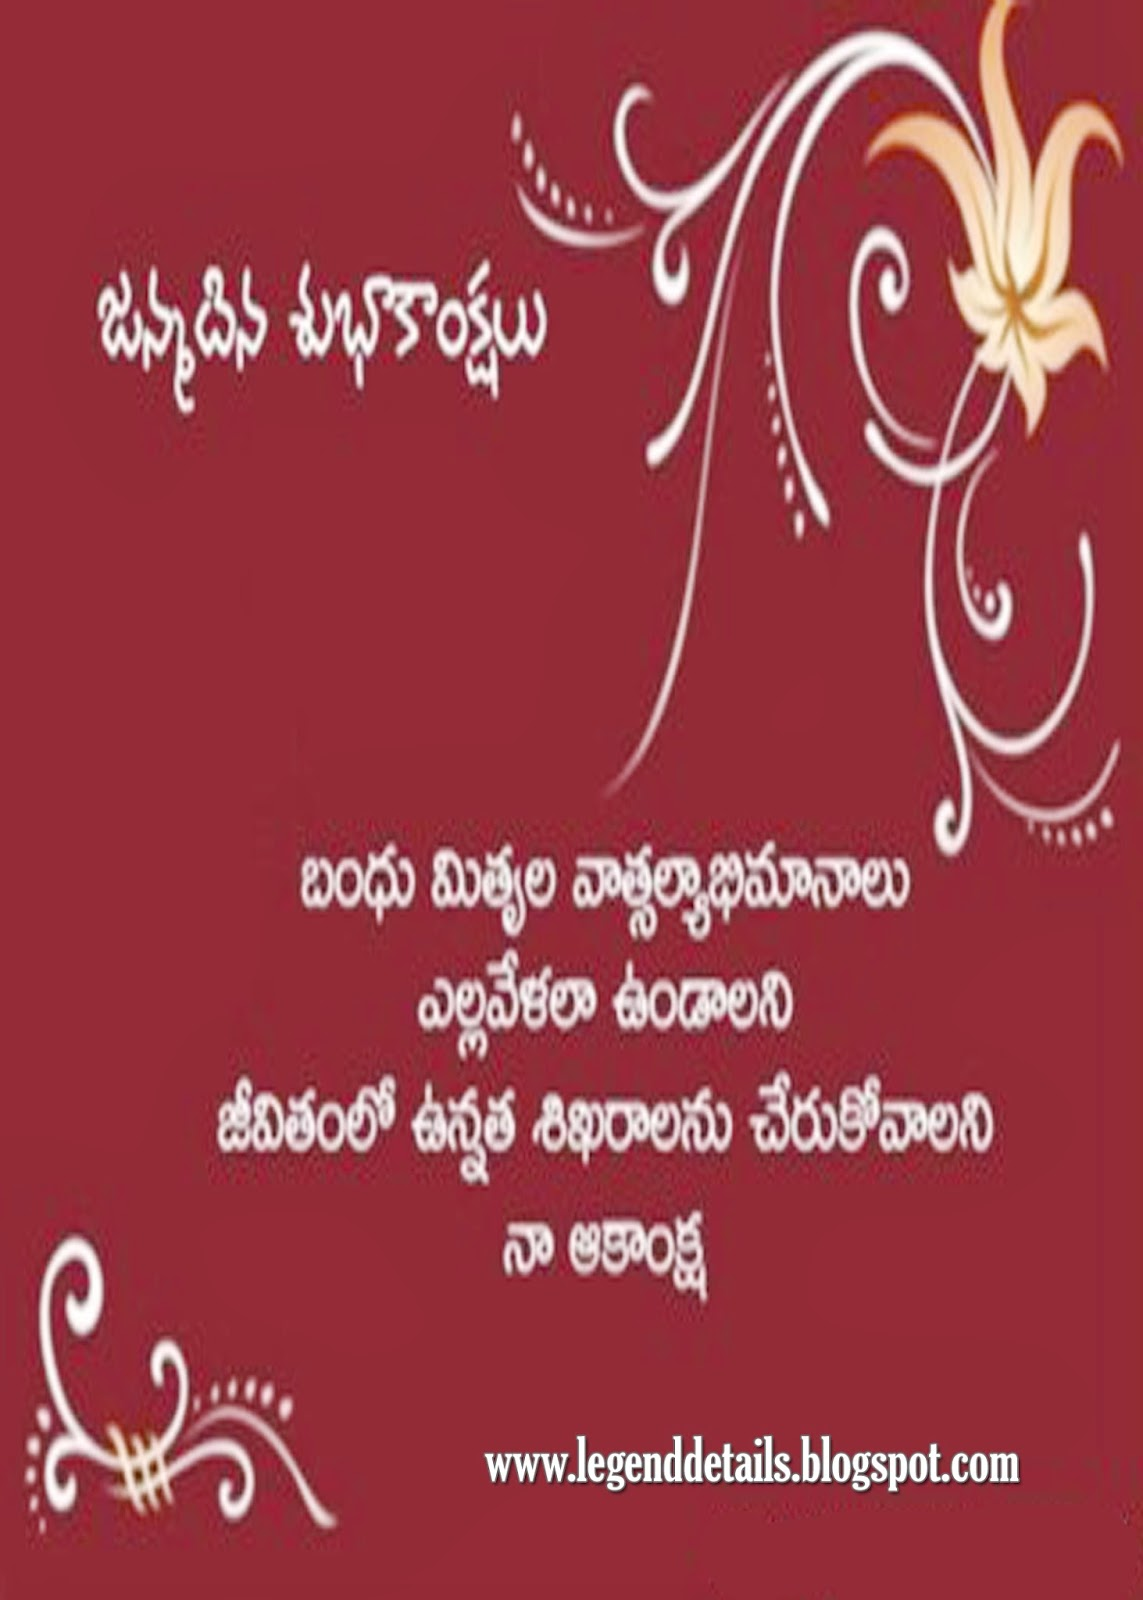 Birth Day Greetings In Telugu Free Subhakankshalu With Images